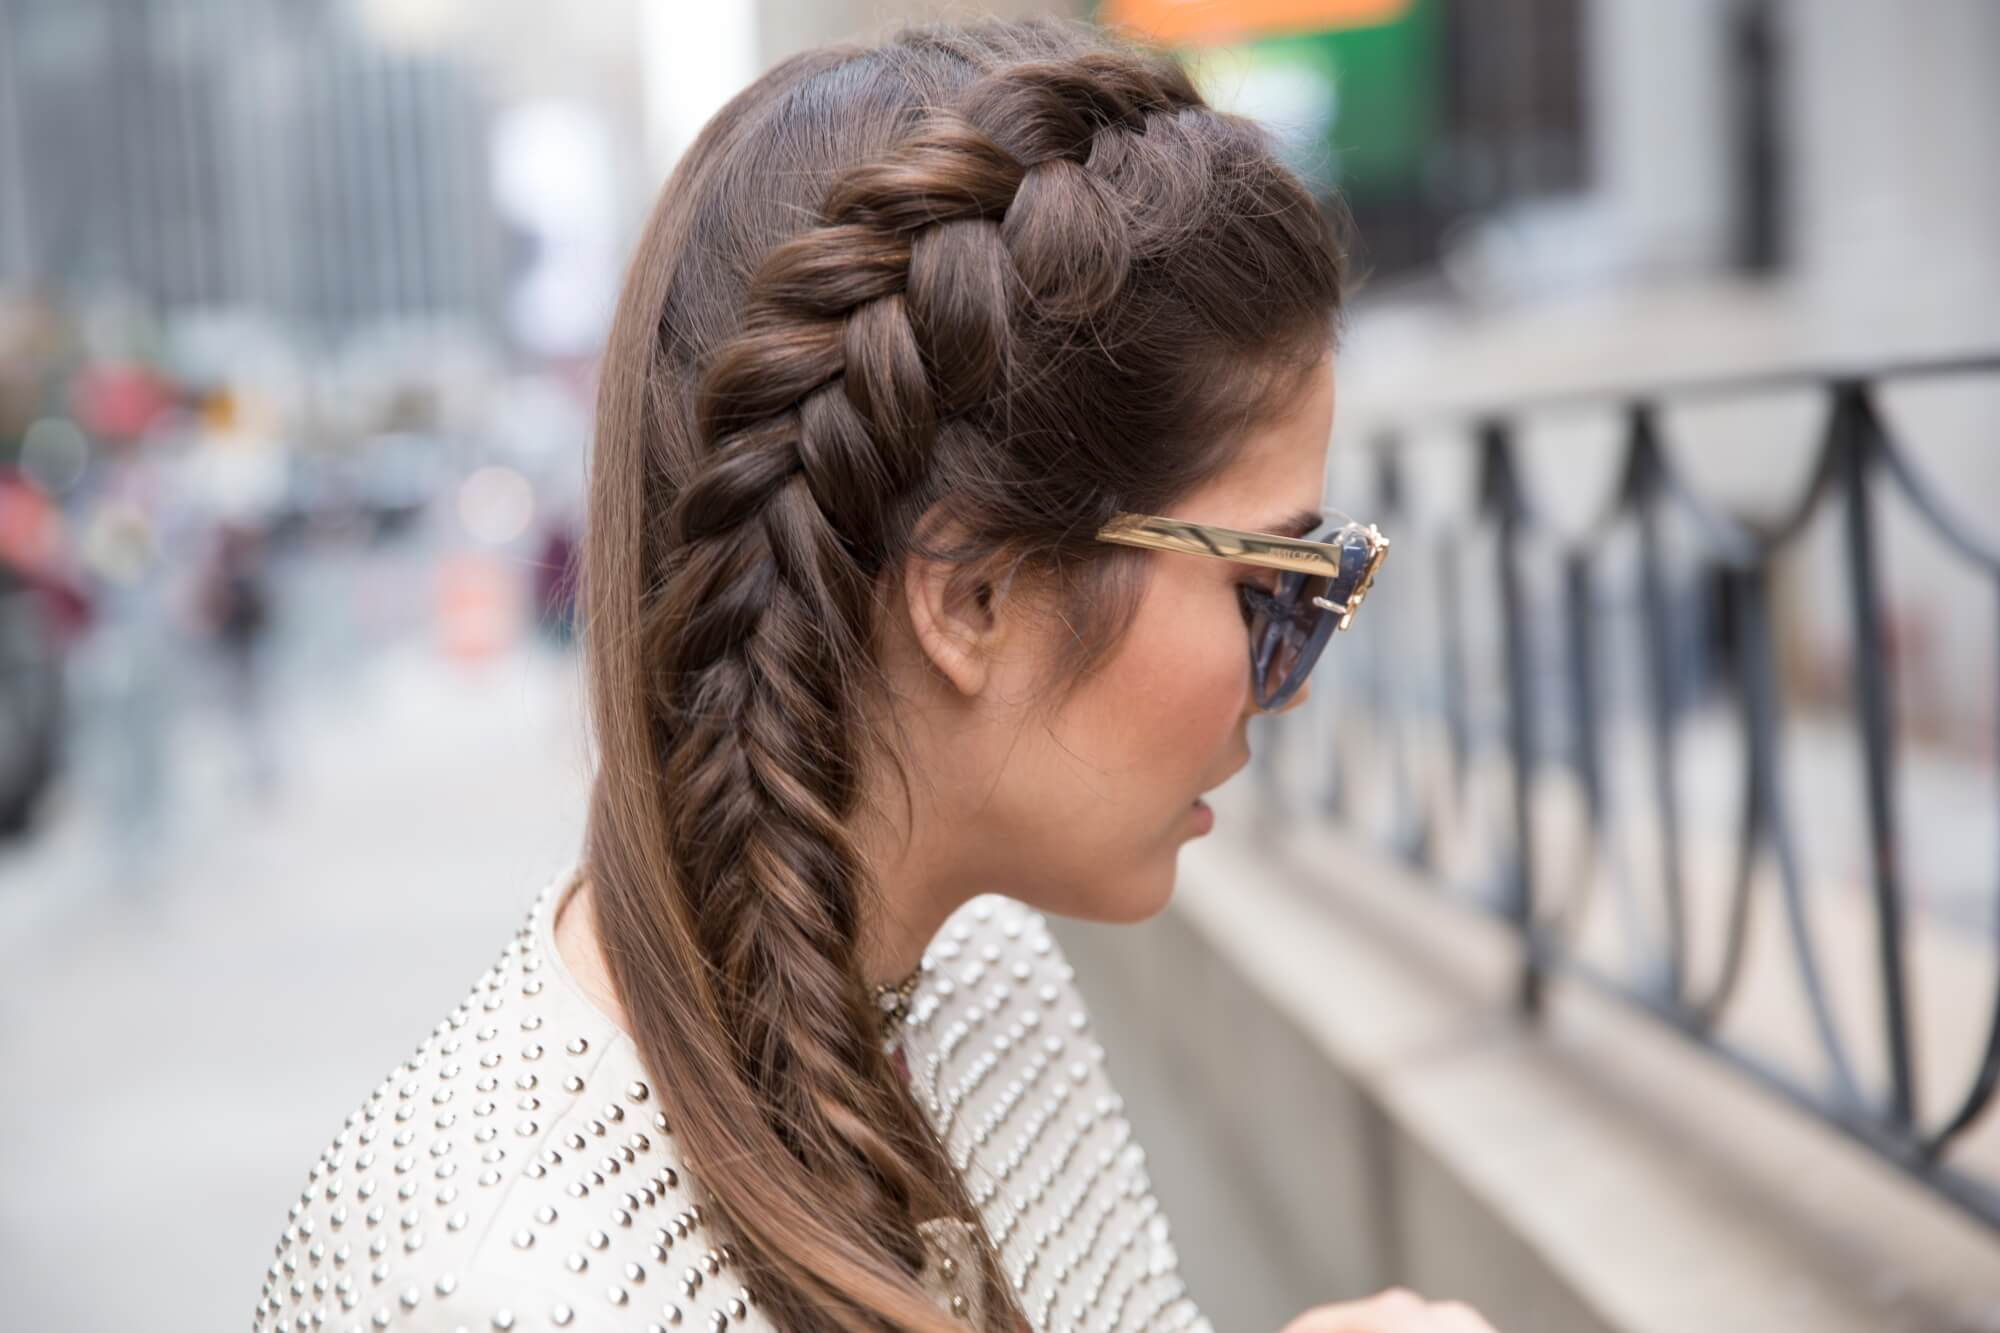 cute spring break hair looks: side braid half-updo